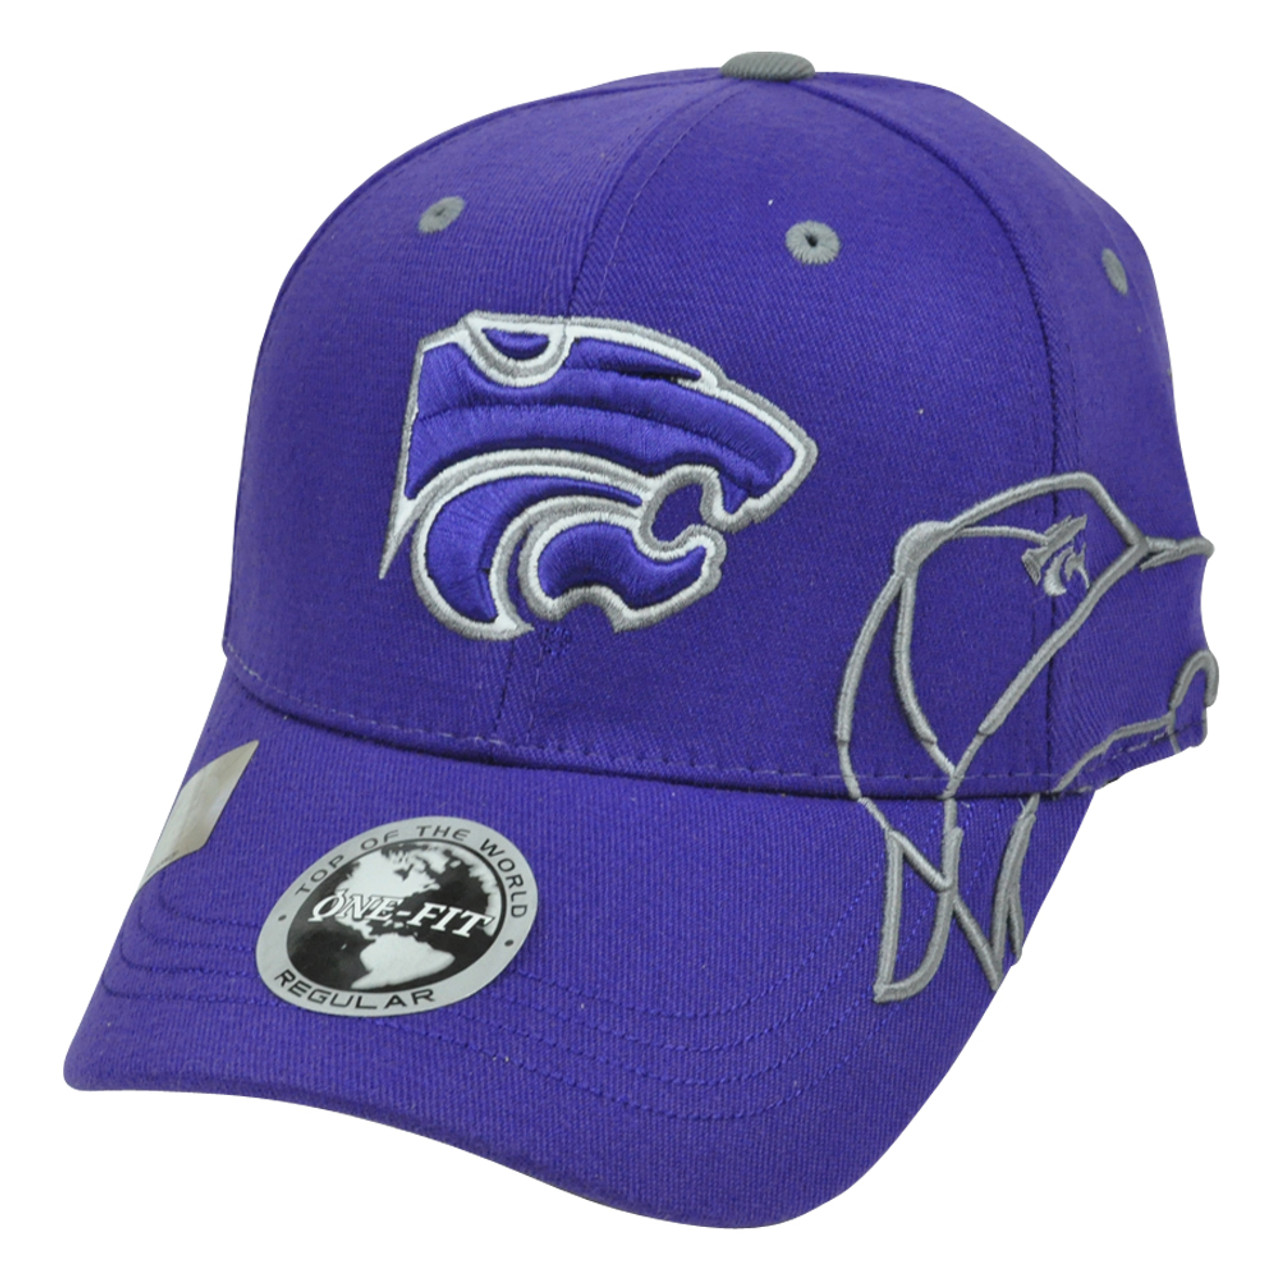 quality design f2f9c cb6a5 NCAA Top of The World Flex Fit One Size Hat Cap Kansas State Wildcats  Construct - Cap Store Online.com